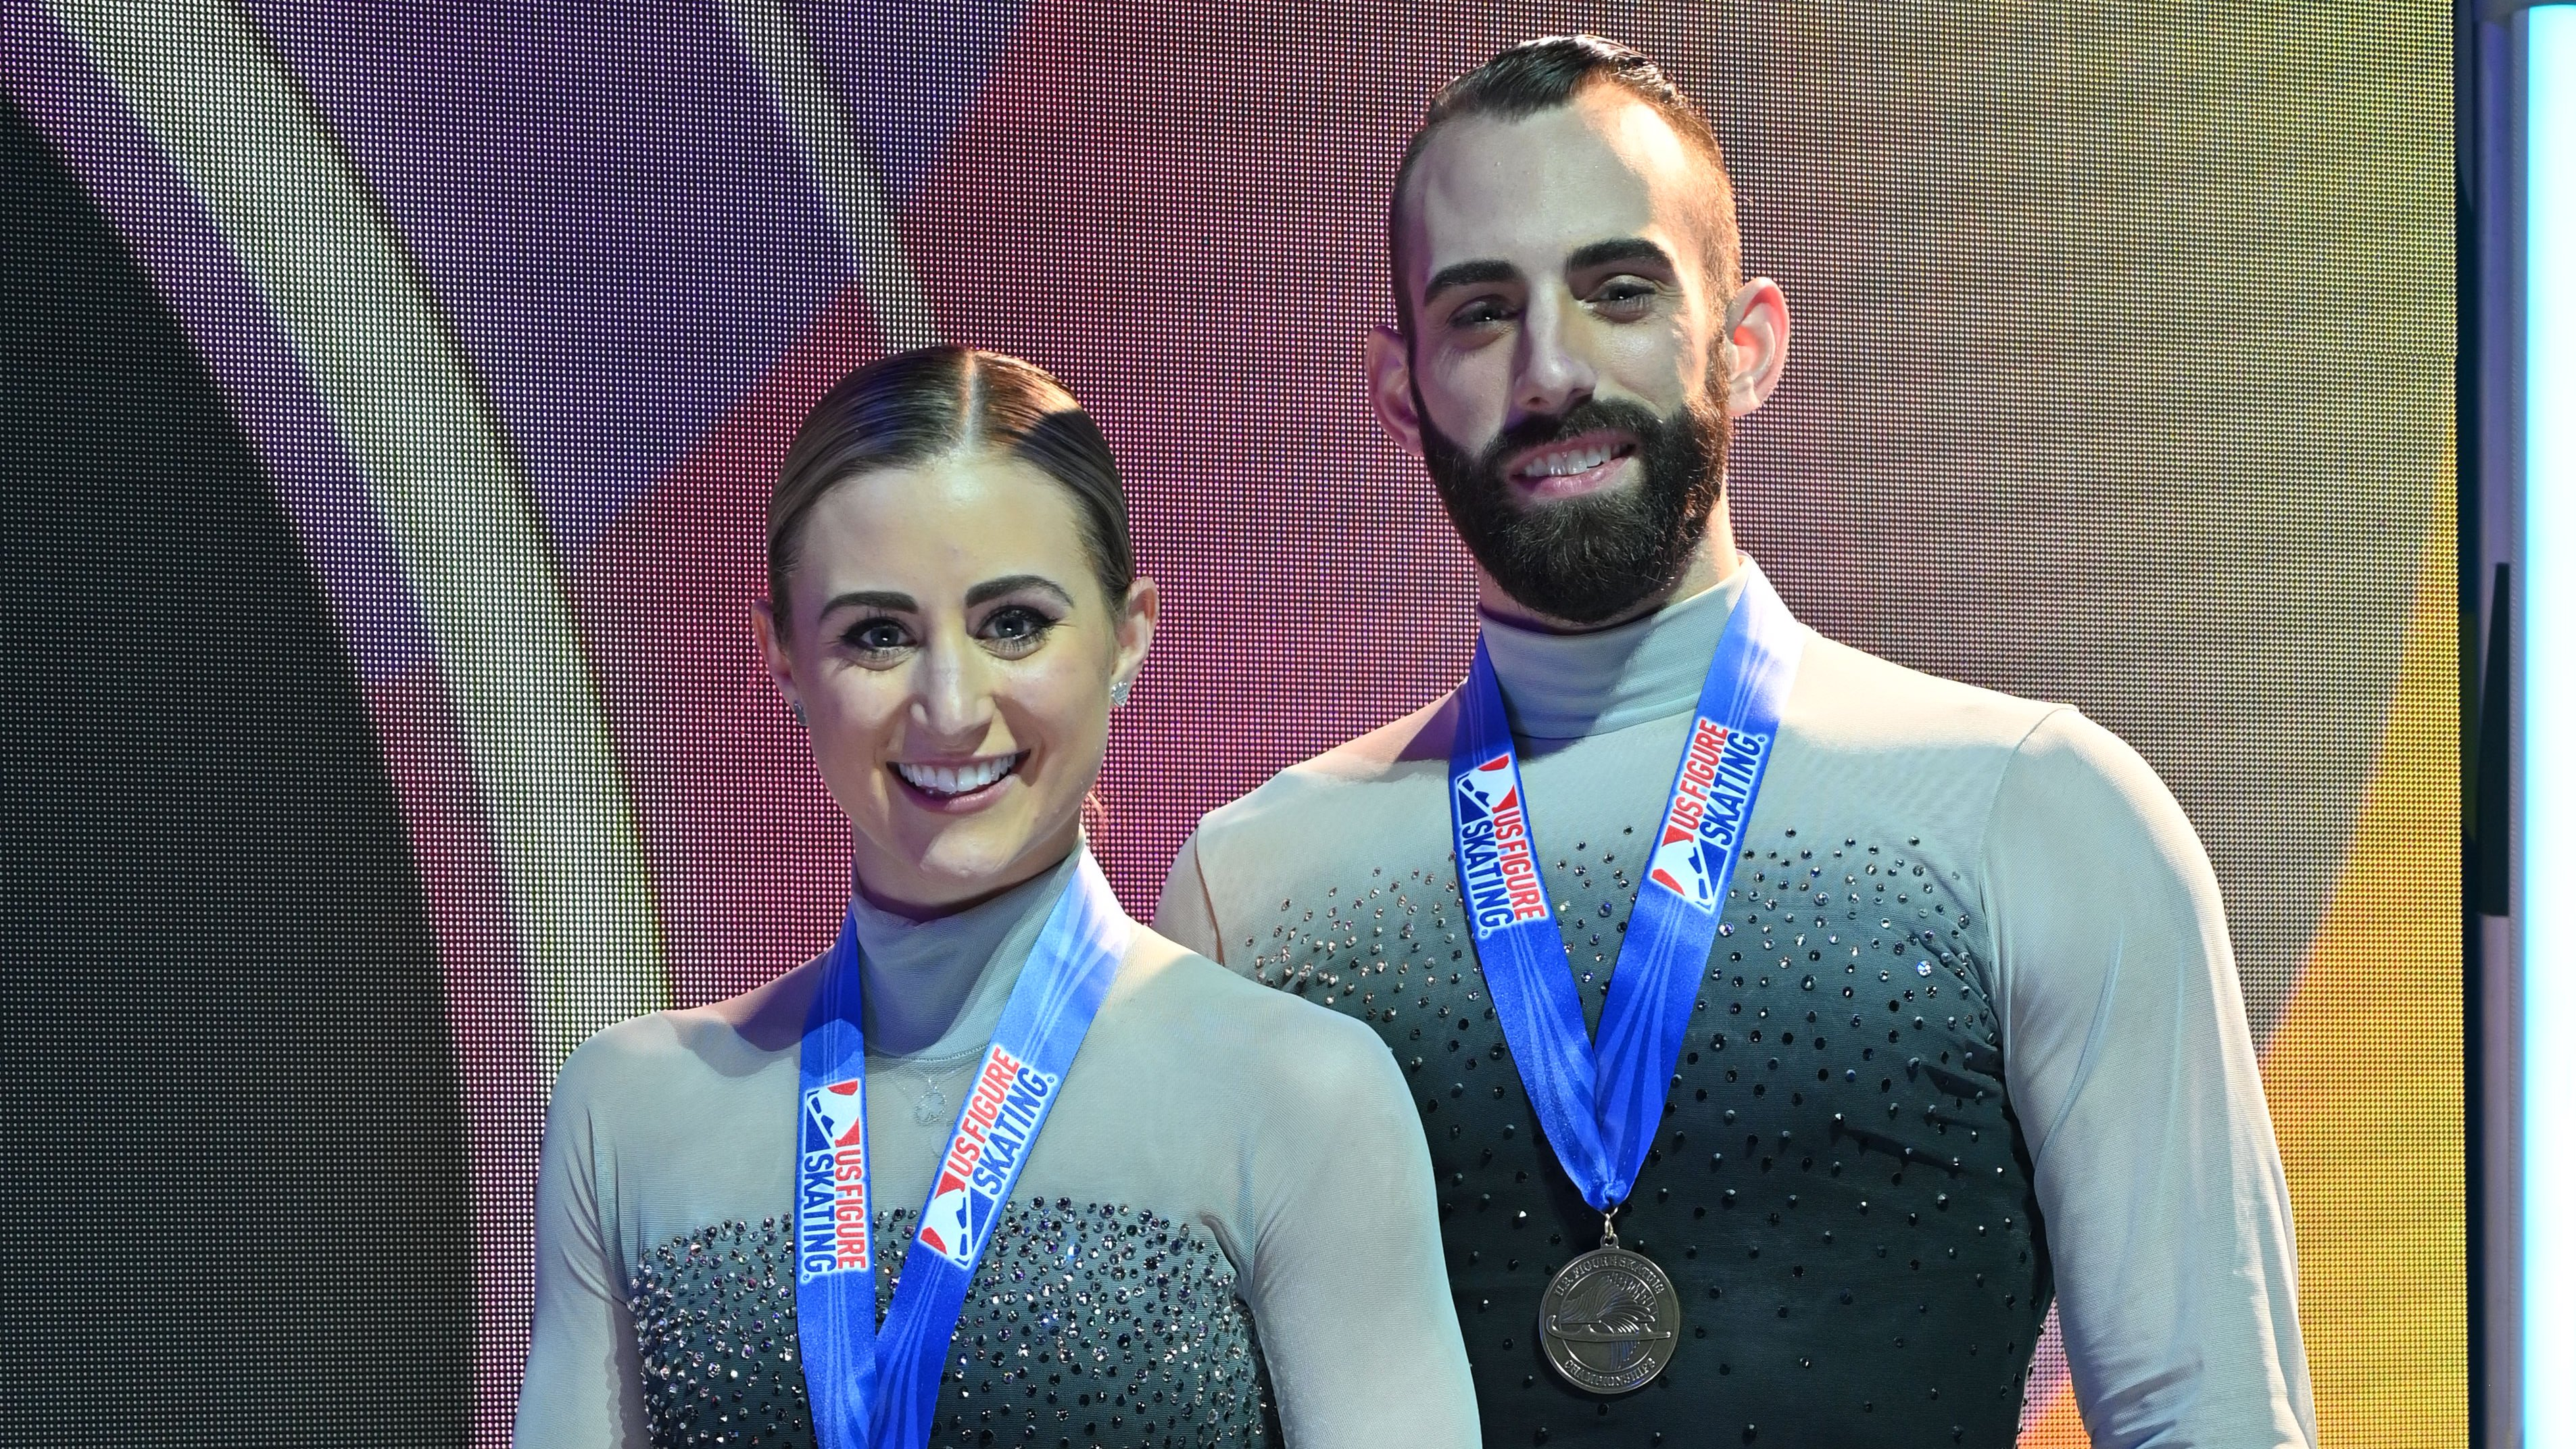 Ashley Cain Gribble and Timothy LeDuc stand for photos with their medal at the 2021 U.S. Figure Skating Championships